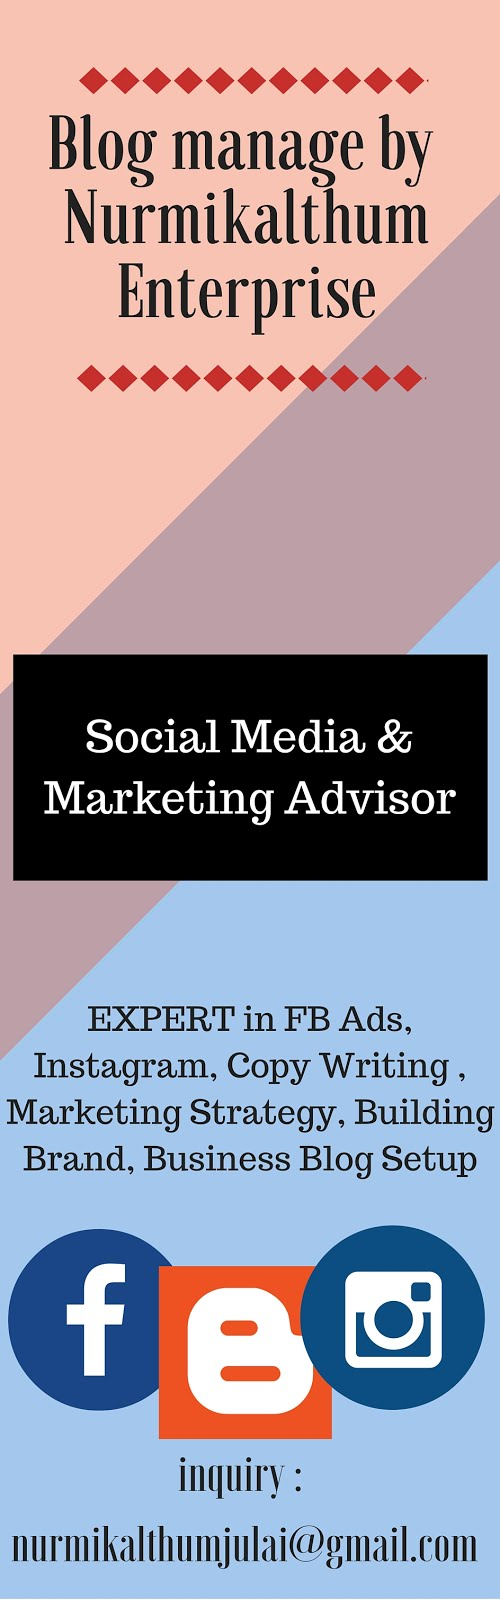 I am a Social Media & Marketing Advisor